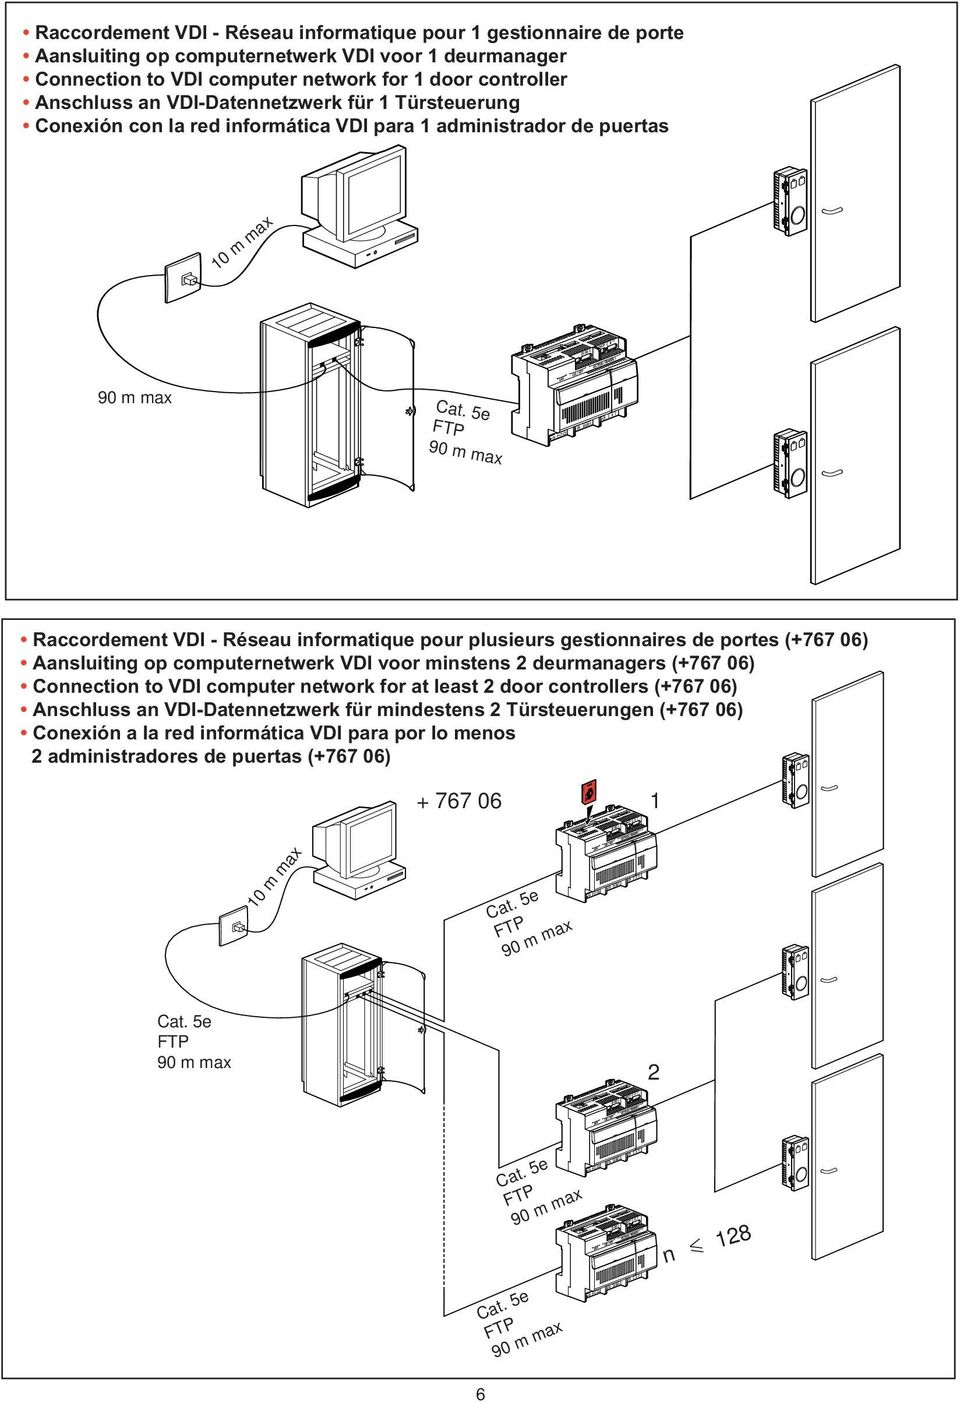 plusieurs gestionnaires de portes (+767 06) Aansluiting op computernetwerk VDI voor minstens 2 deurmanagers (+767 06) Connection to VDI computer network for at least 2 door controllers (+767